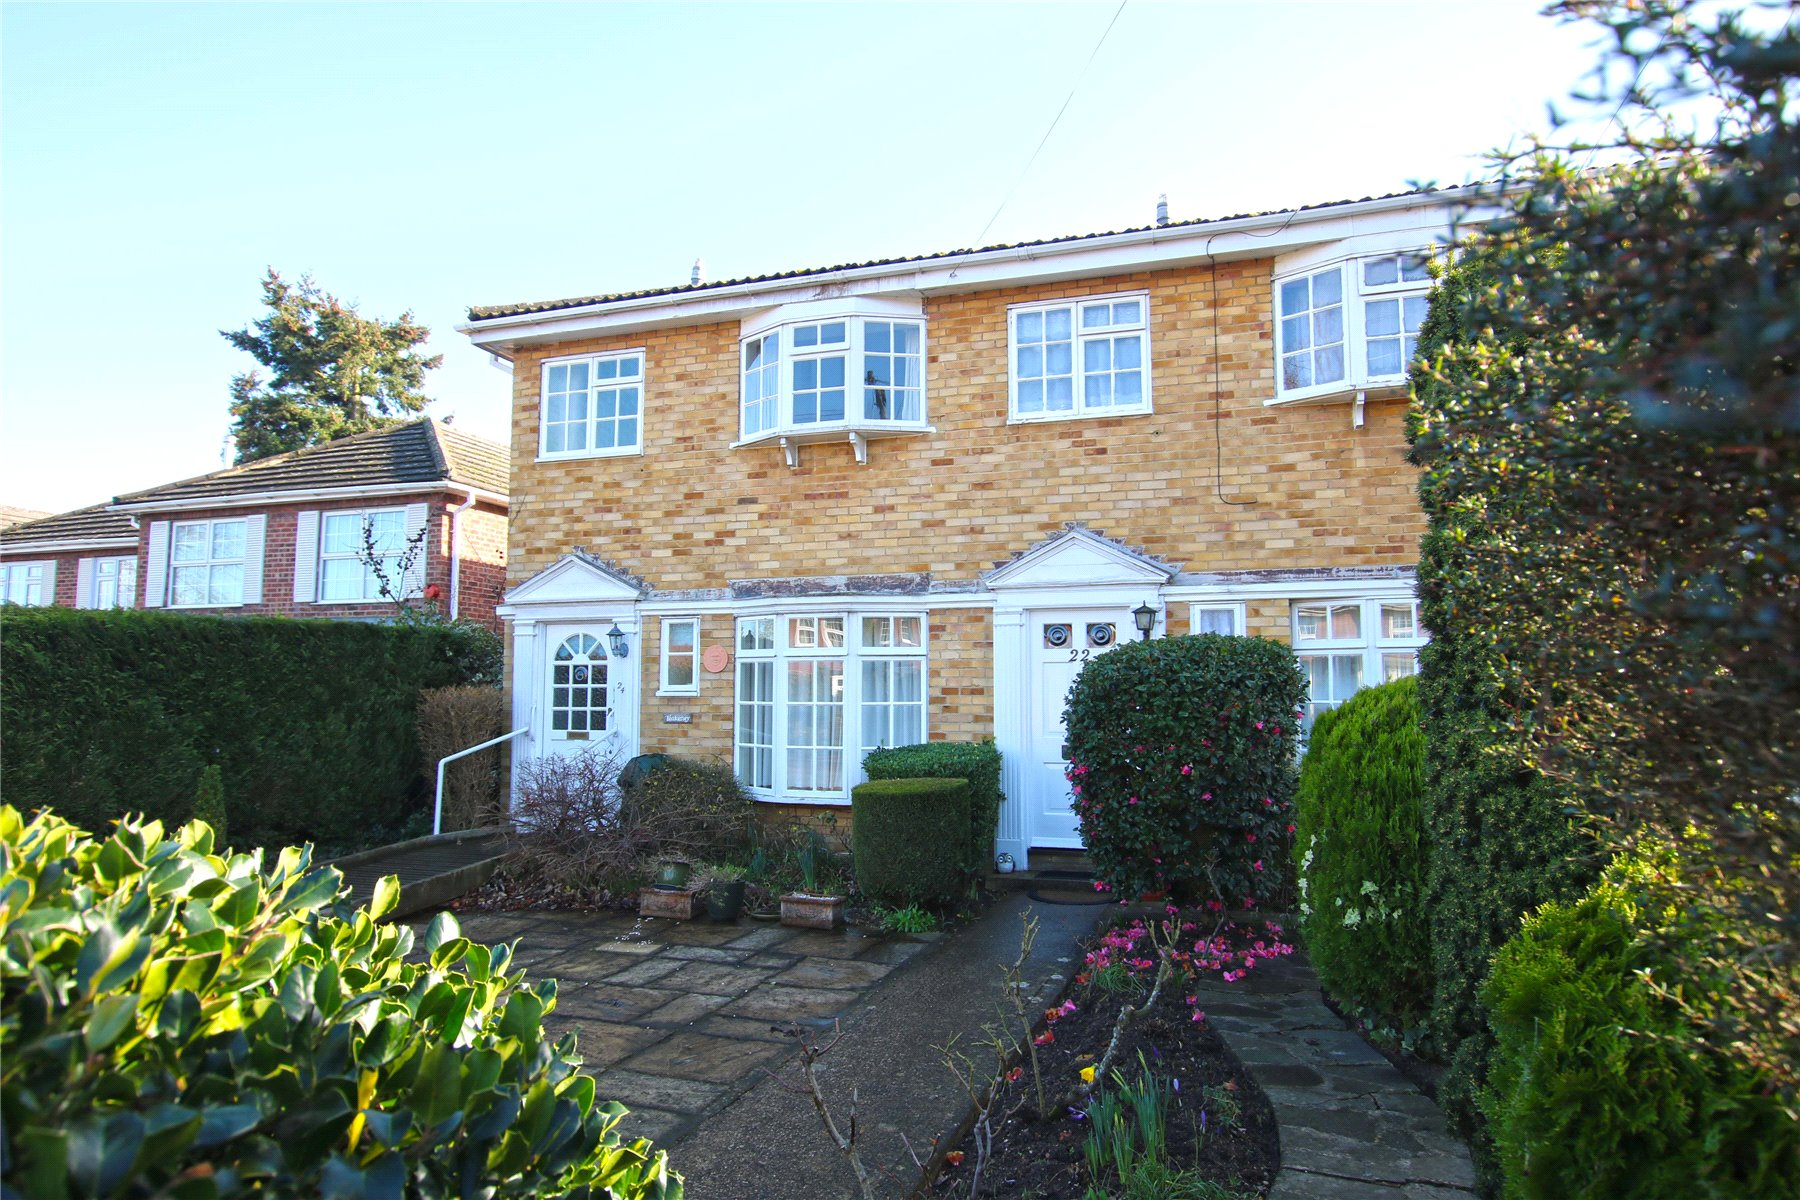 3 Bedrooms End Of Terrace House for sale in Madeira Road, West Byfleet, Surrey, KT14